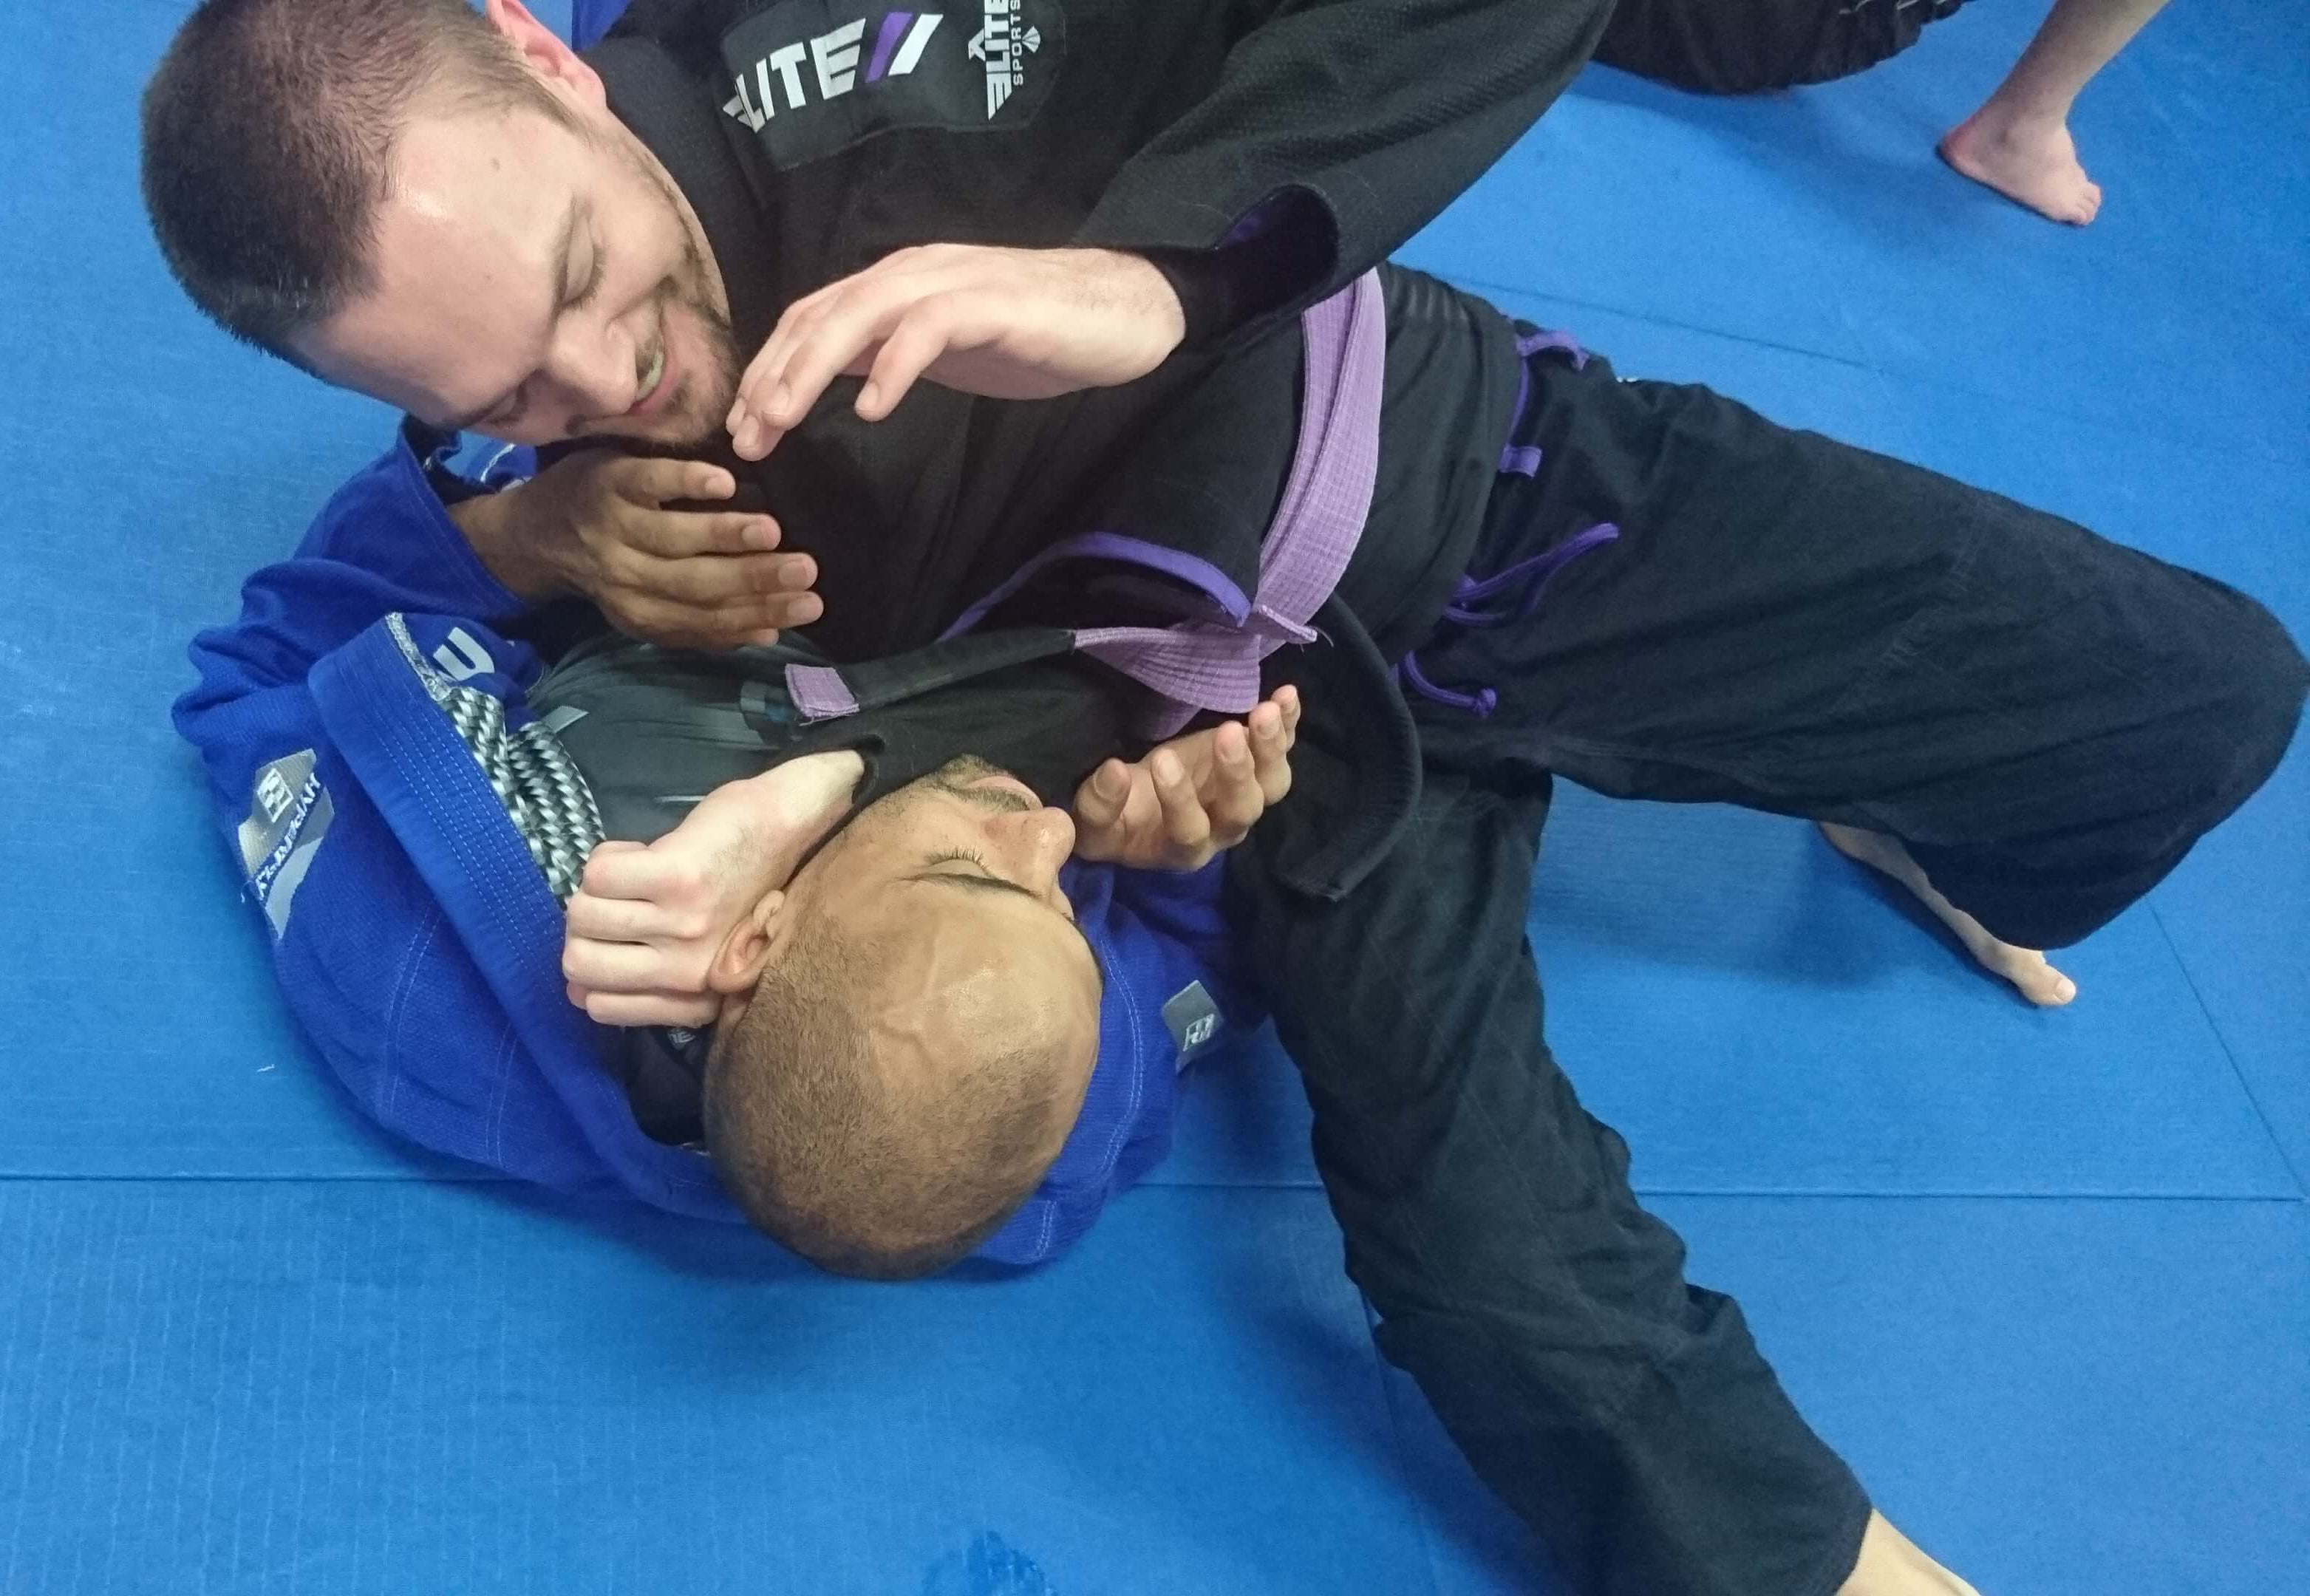 Elite sports Team Elite BJJ Shaun Steven Harrison image11.jpg